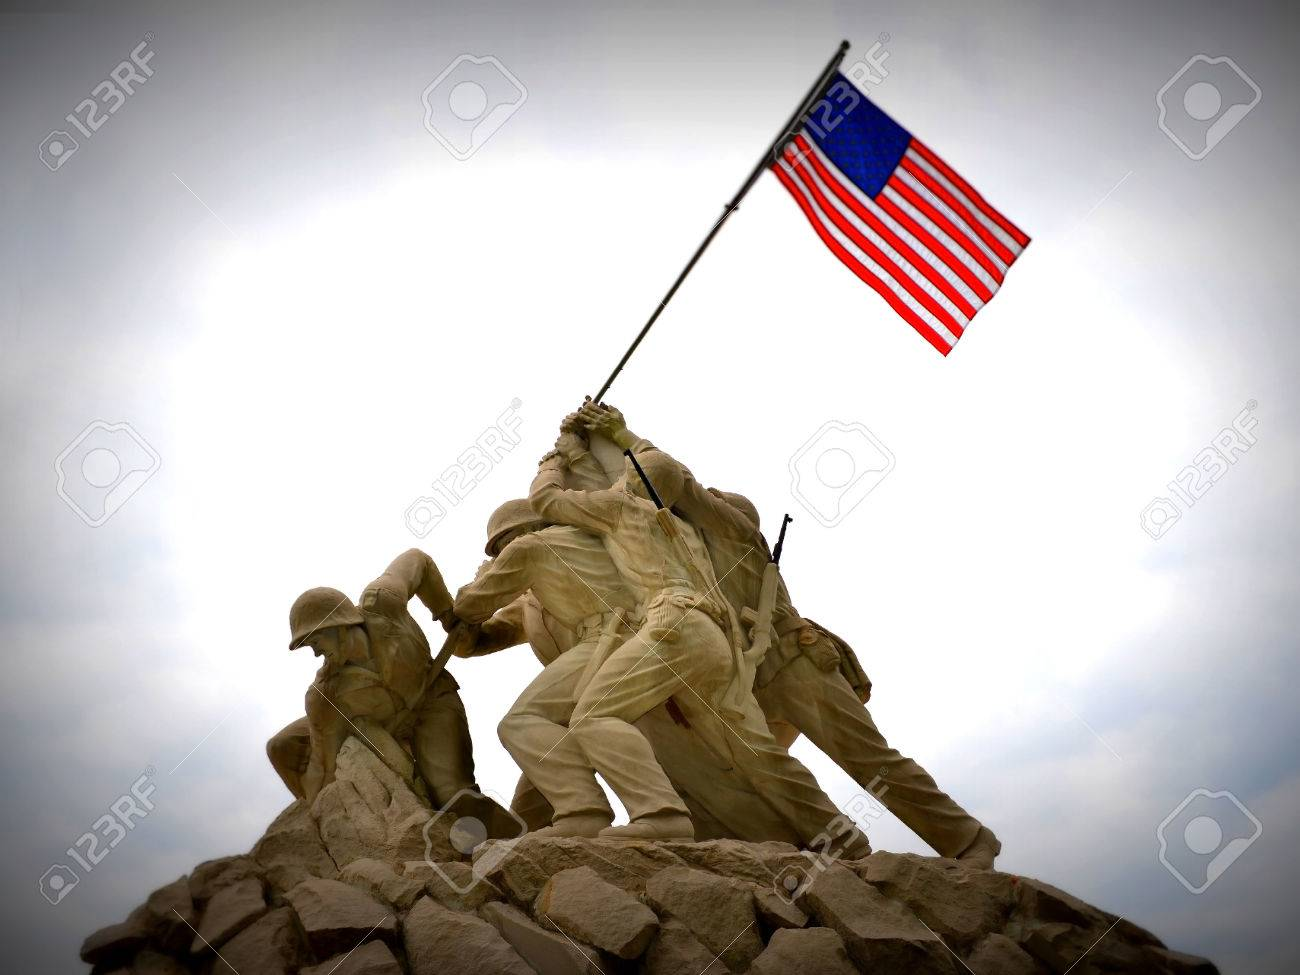 Sept  2013 - Replica of Iwo Jima statue at the entrance to Quantico Marine Corps Base, Quantico, VA  Stock Photo - 22320061